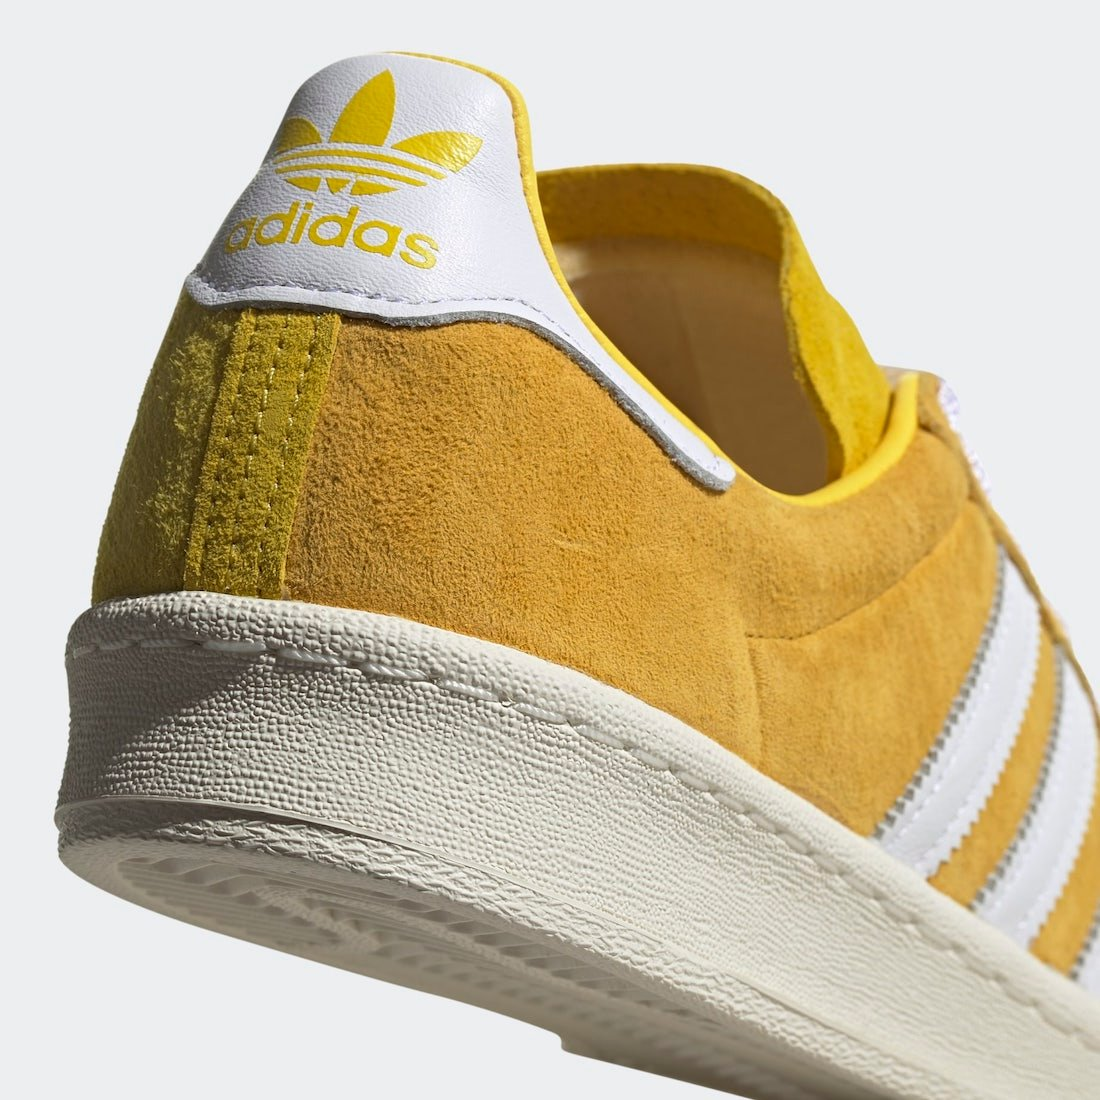 adidas Campus 80s Bold Gold FX5443 Release Date Info